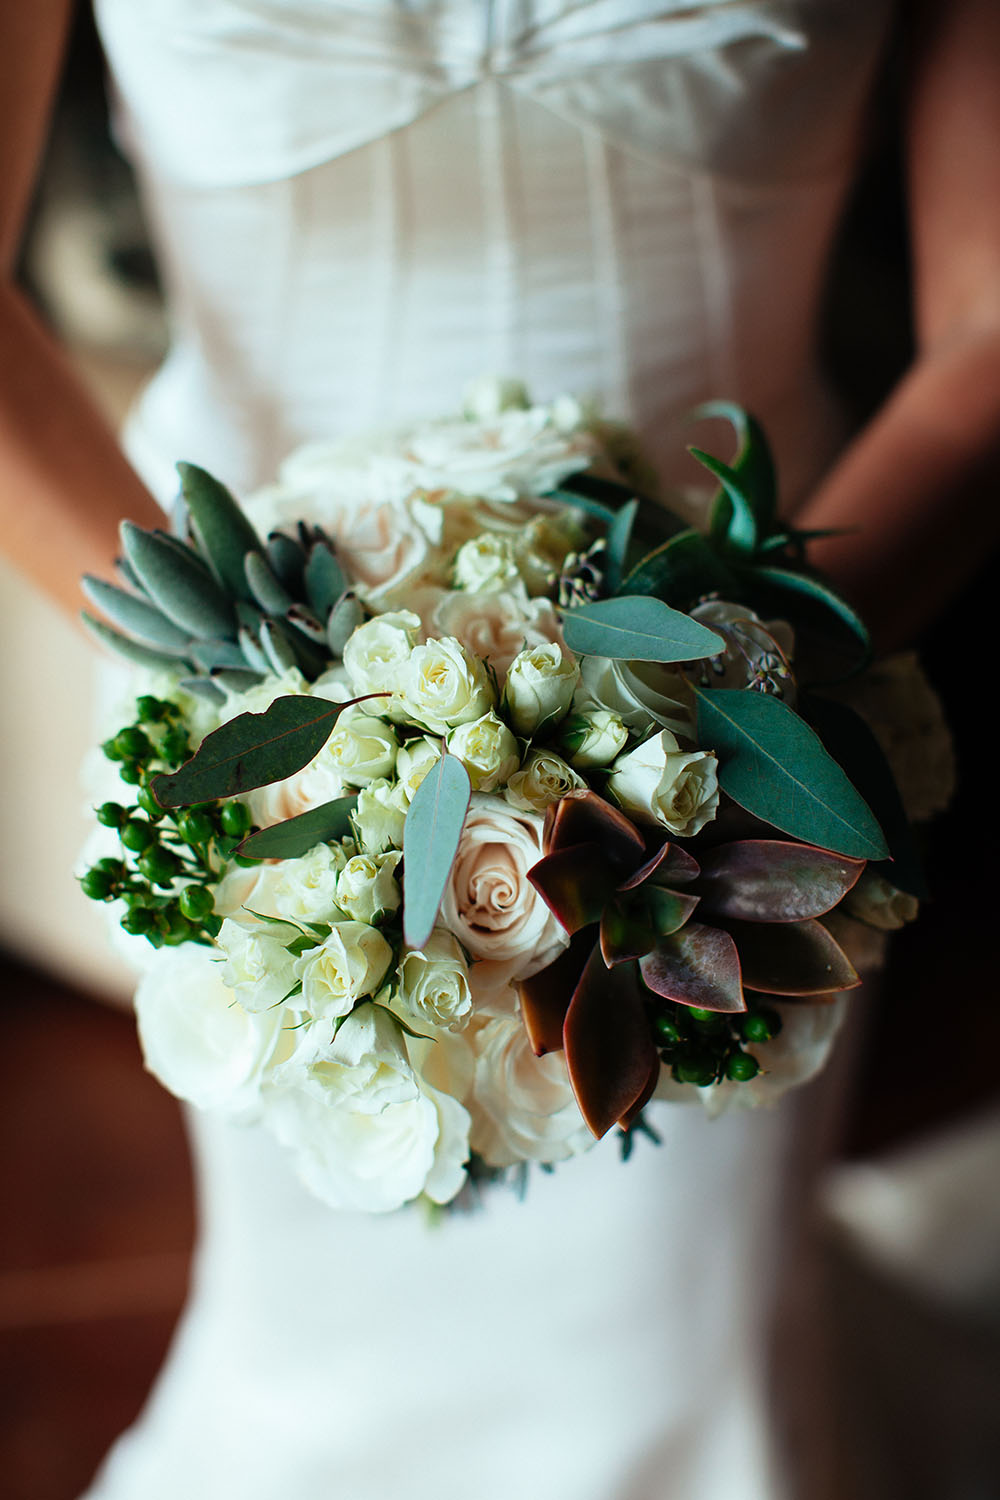 dramatic succulent bridal bouquet by Bliss Wedding Design - photo by Dmitri and Sandra White floral ceremony arch by Bliss Wedding Design - photo by Dmitri and Sandra Photography